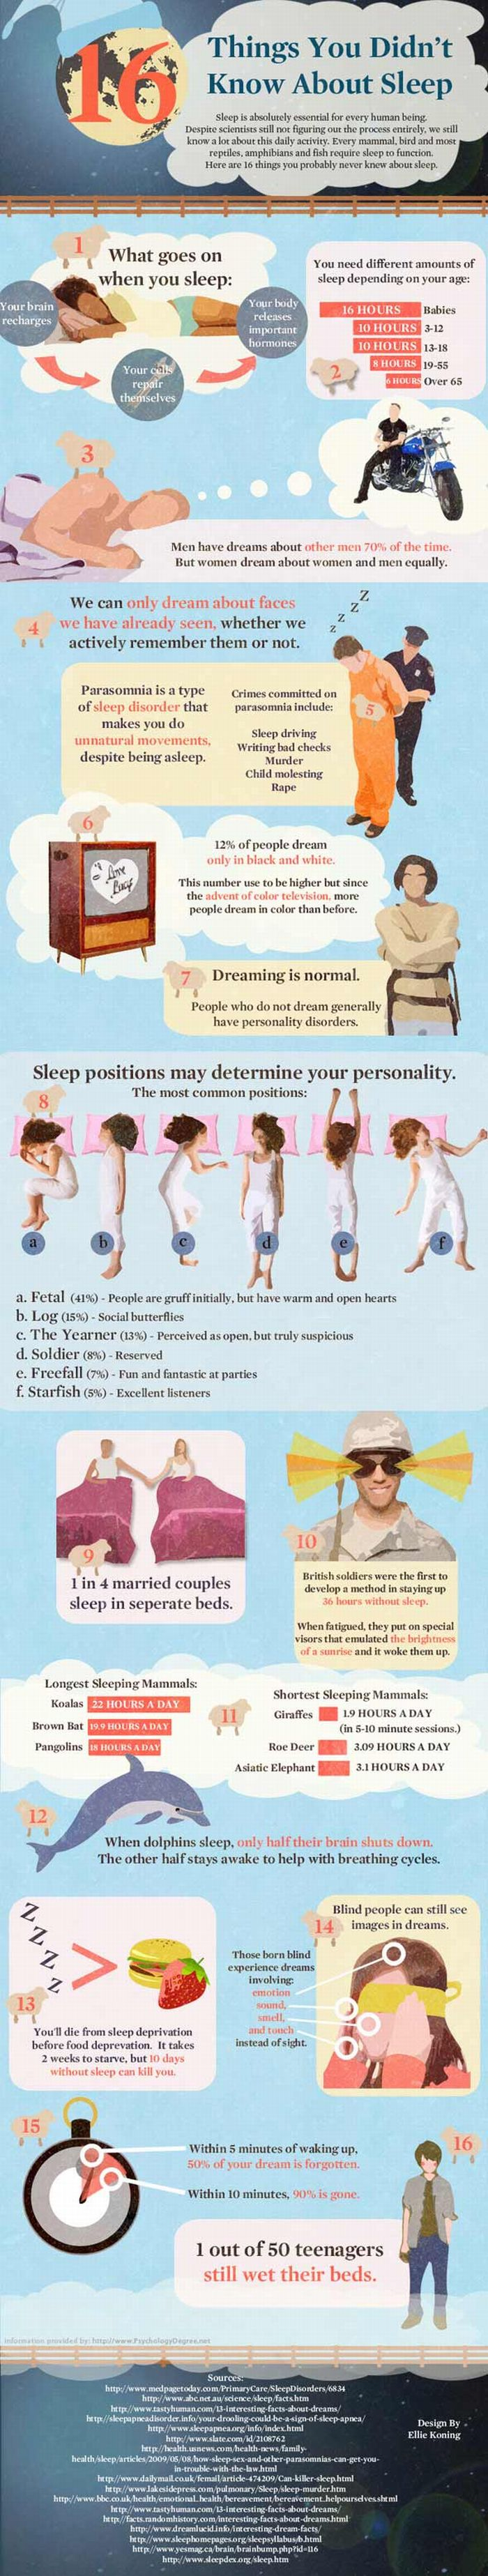 Things You Didn't Know About Sleep (infographic)